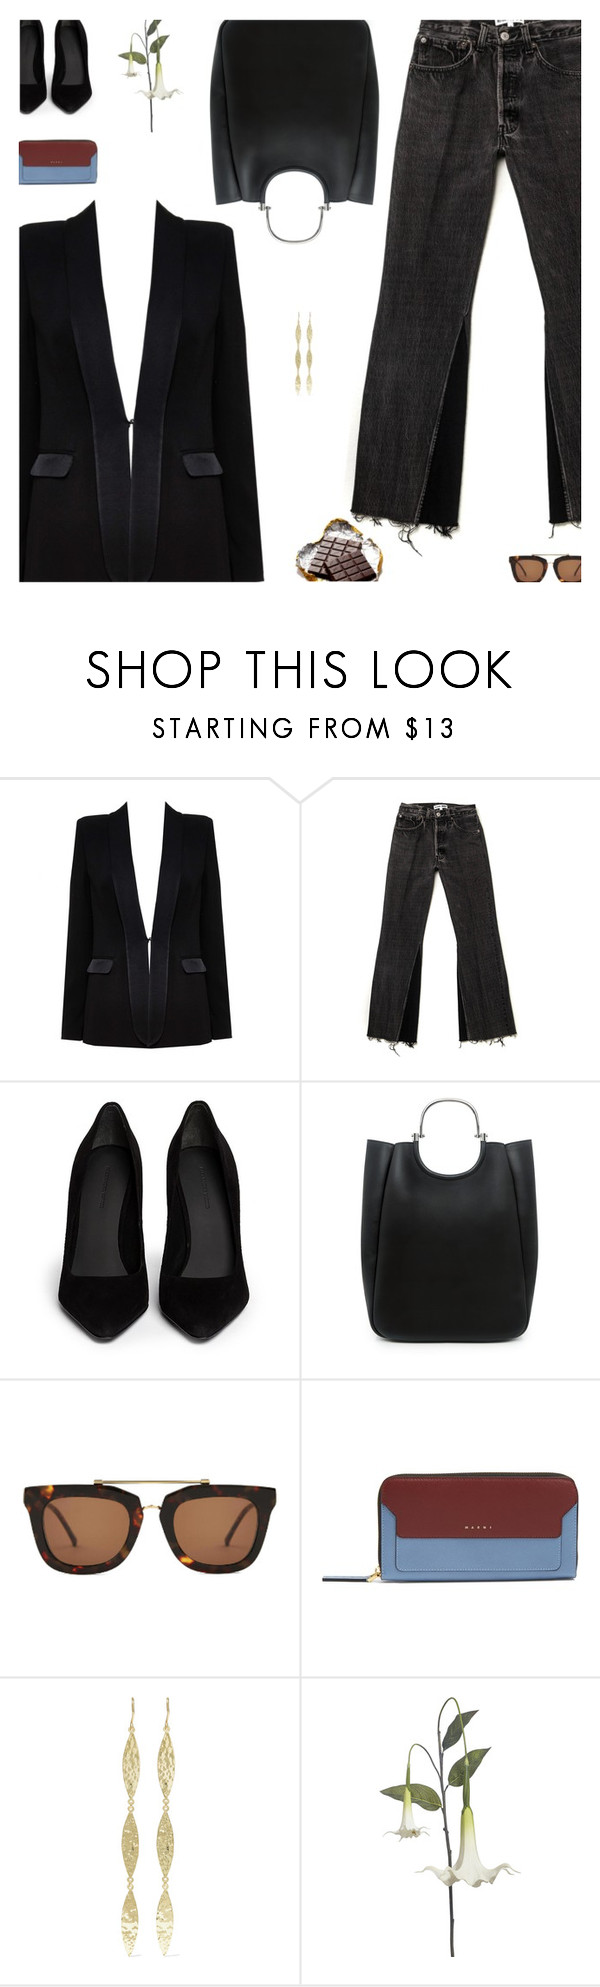 """Plainsong"" by amberelb ❤ liked on Polyvore featuring Alice + Olivia, Alexander Wang, 10 Crosby Derek Lam, Kaibosh, Marni, Jennifer Meyer Jewelry and Pier 1 Imports"